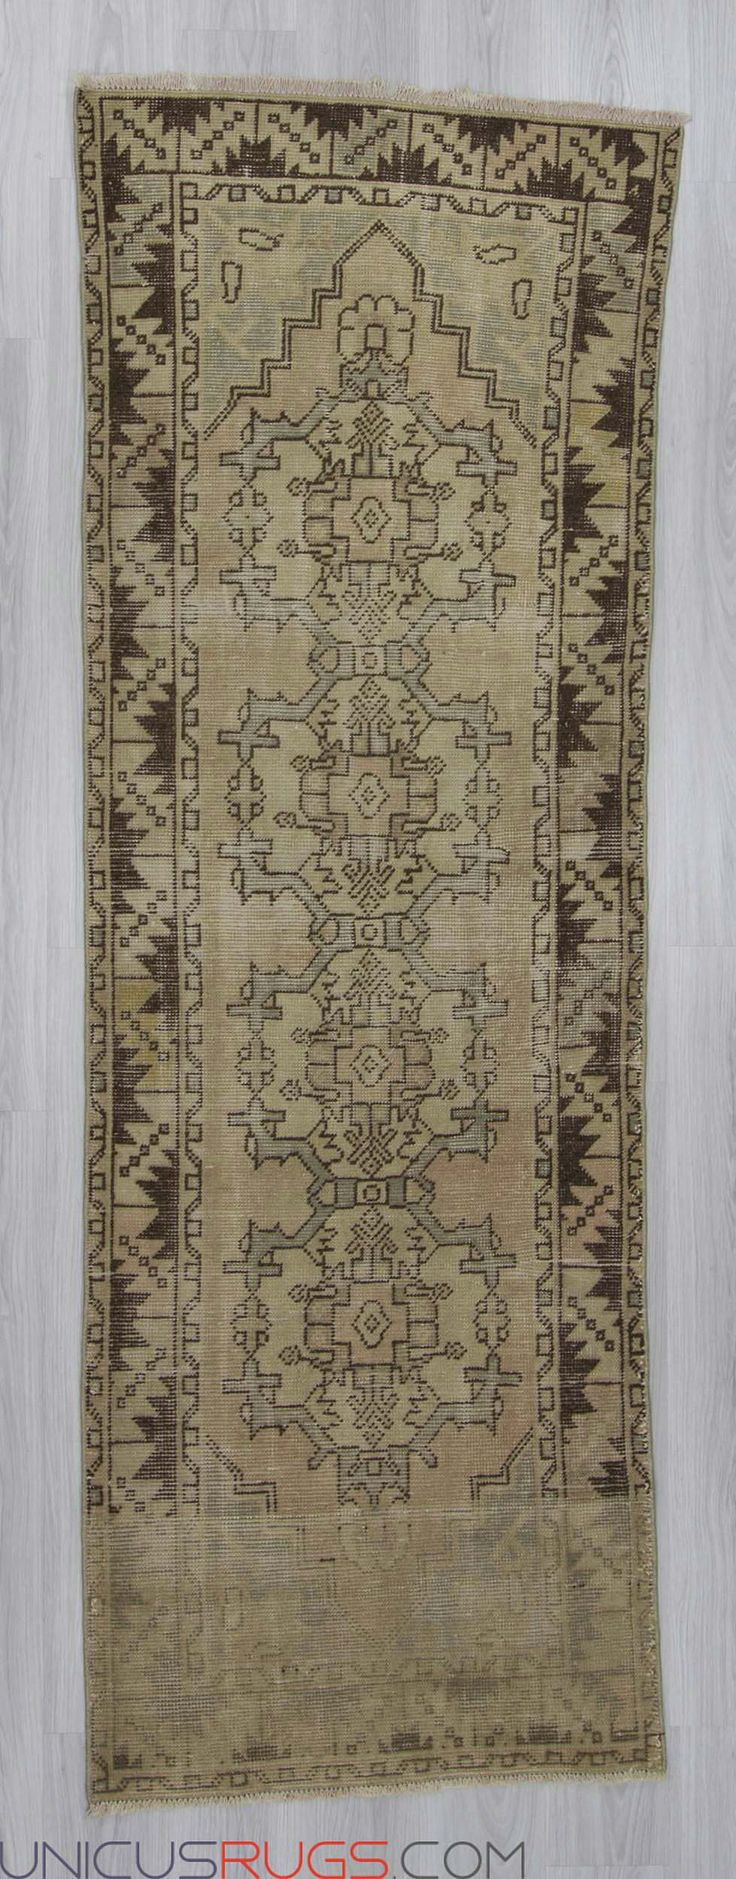 """Vintage decorative runner rug from Nigde region of Turkey. In very good condition. Approximately 40-50 years old. Width: 2' 11"""" - Length: 8' 7"""" RUNNERS"""